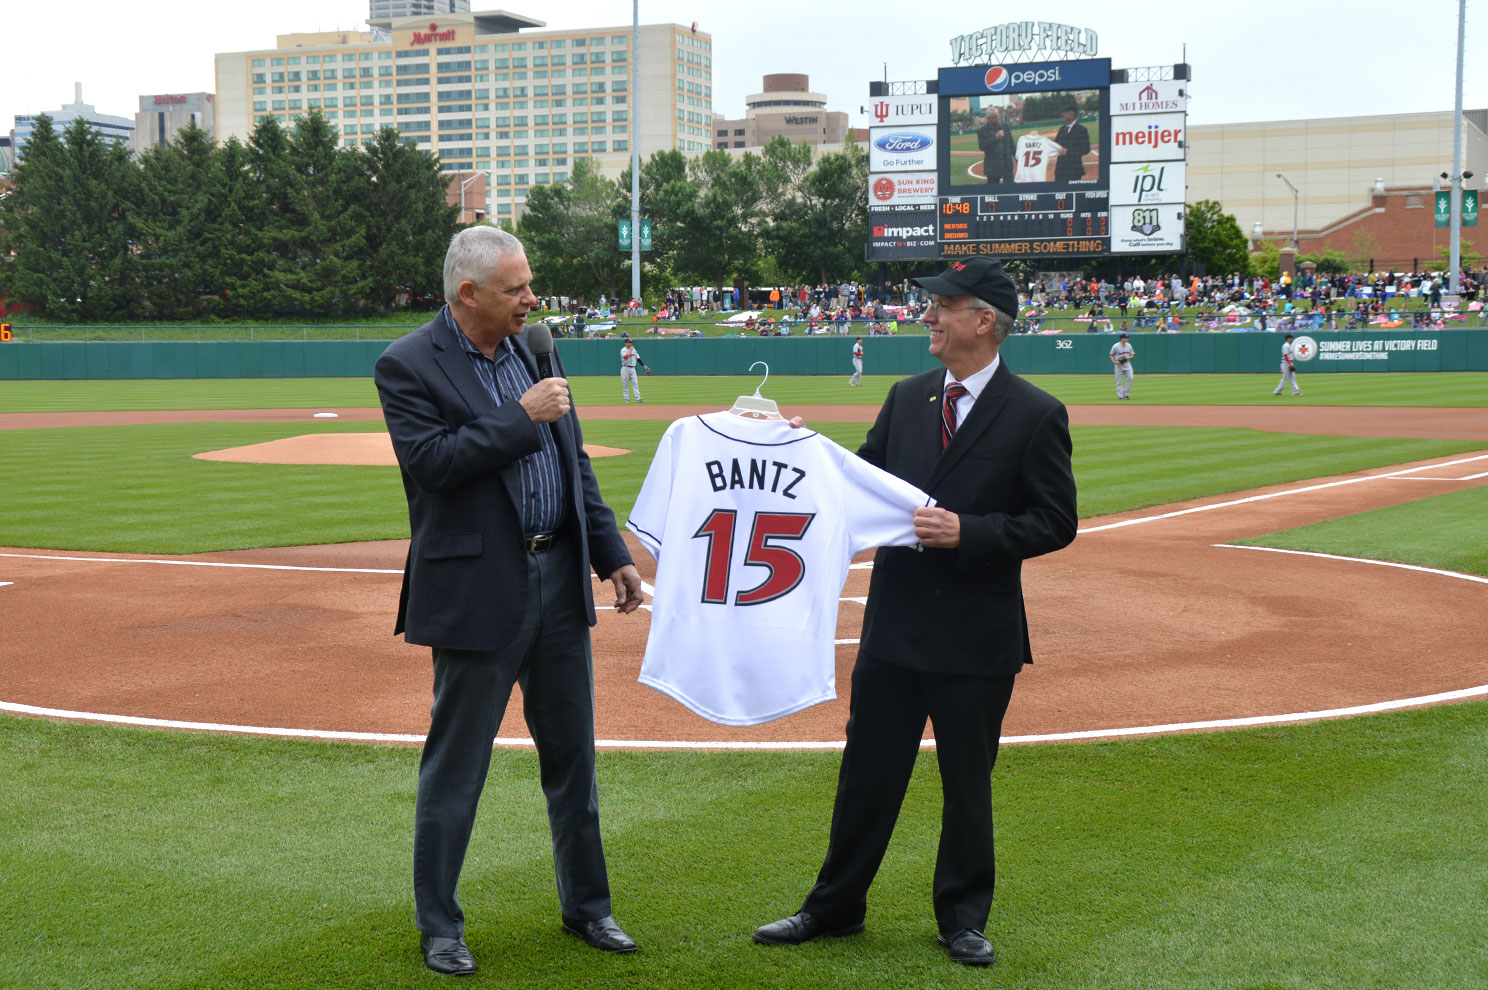 Carl Burleson present Chancellor Bantz with an Indianapolis Indians jersey.